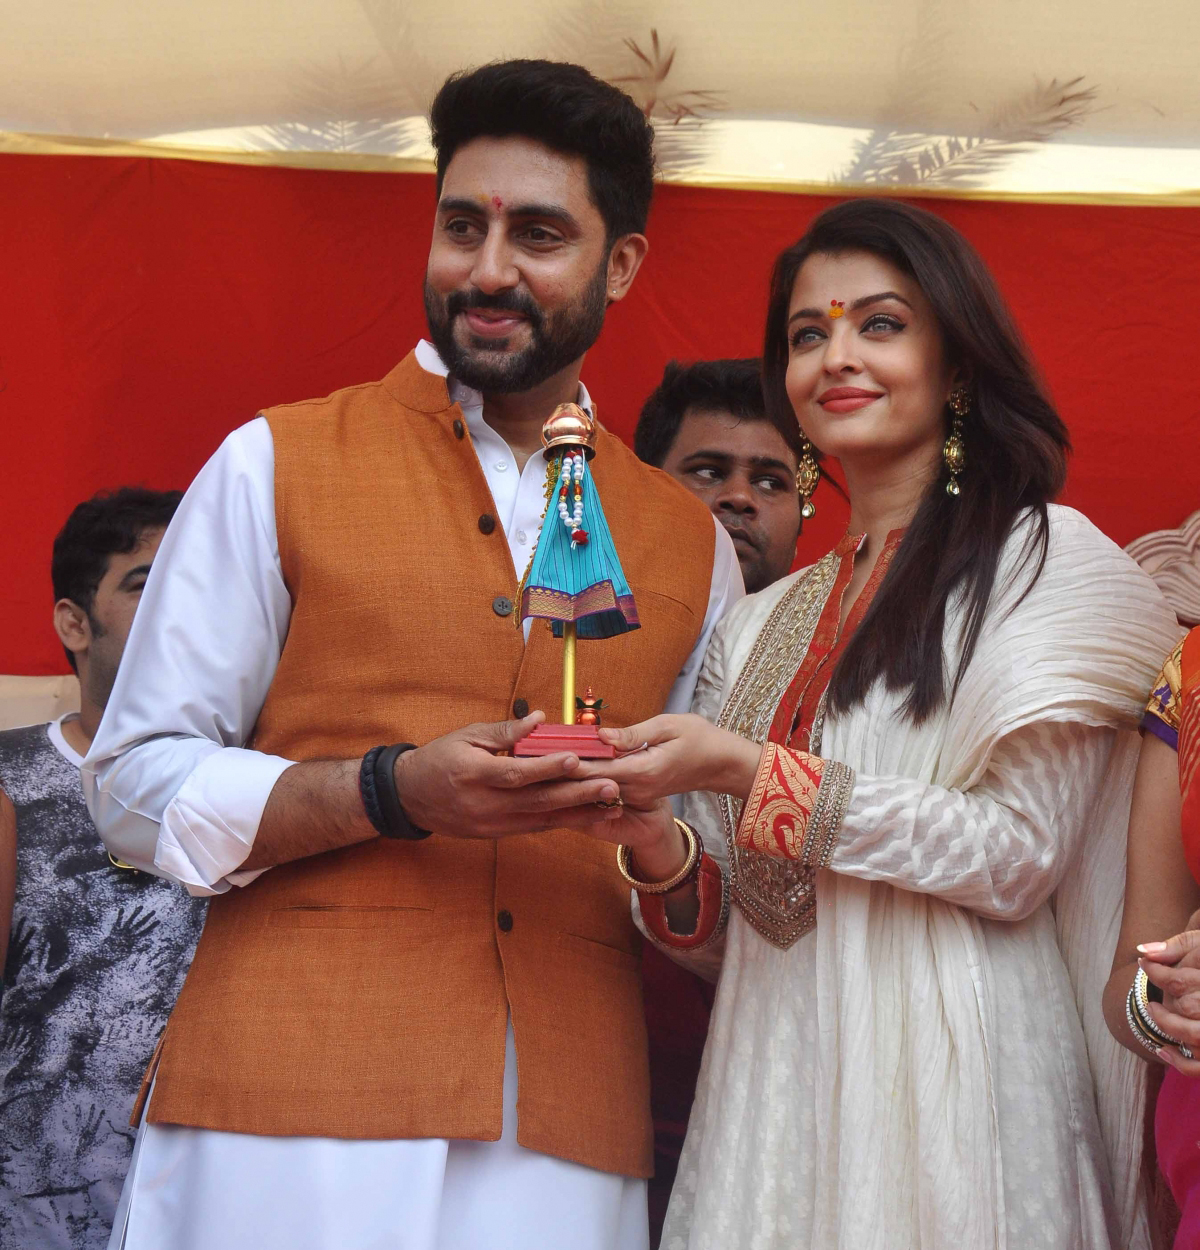 Aishwarya and Abhishek in karva chauth